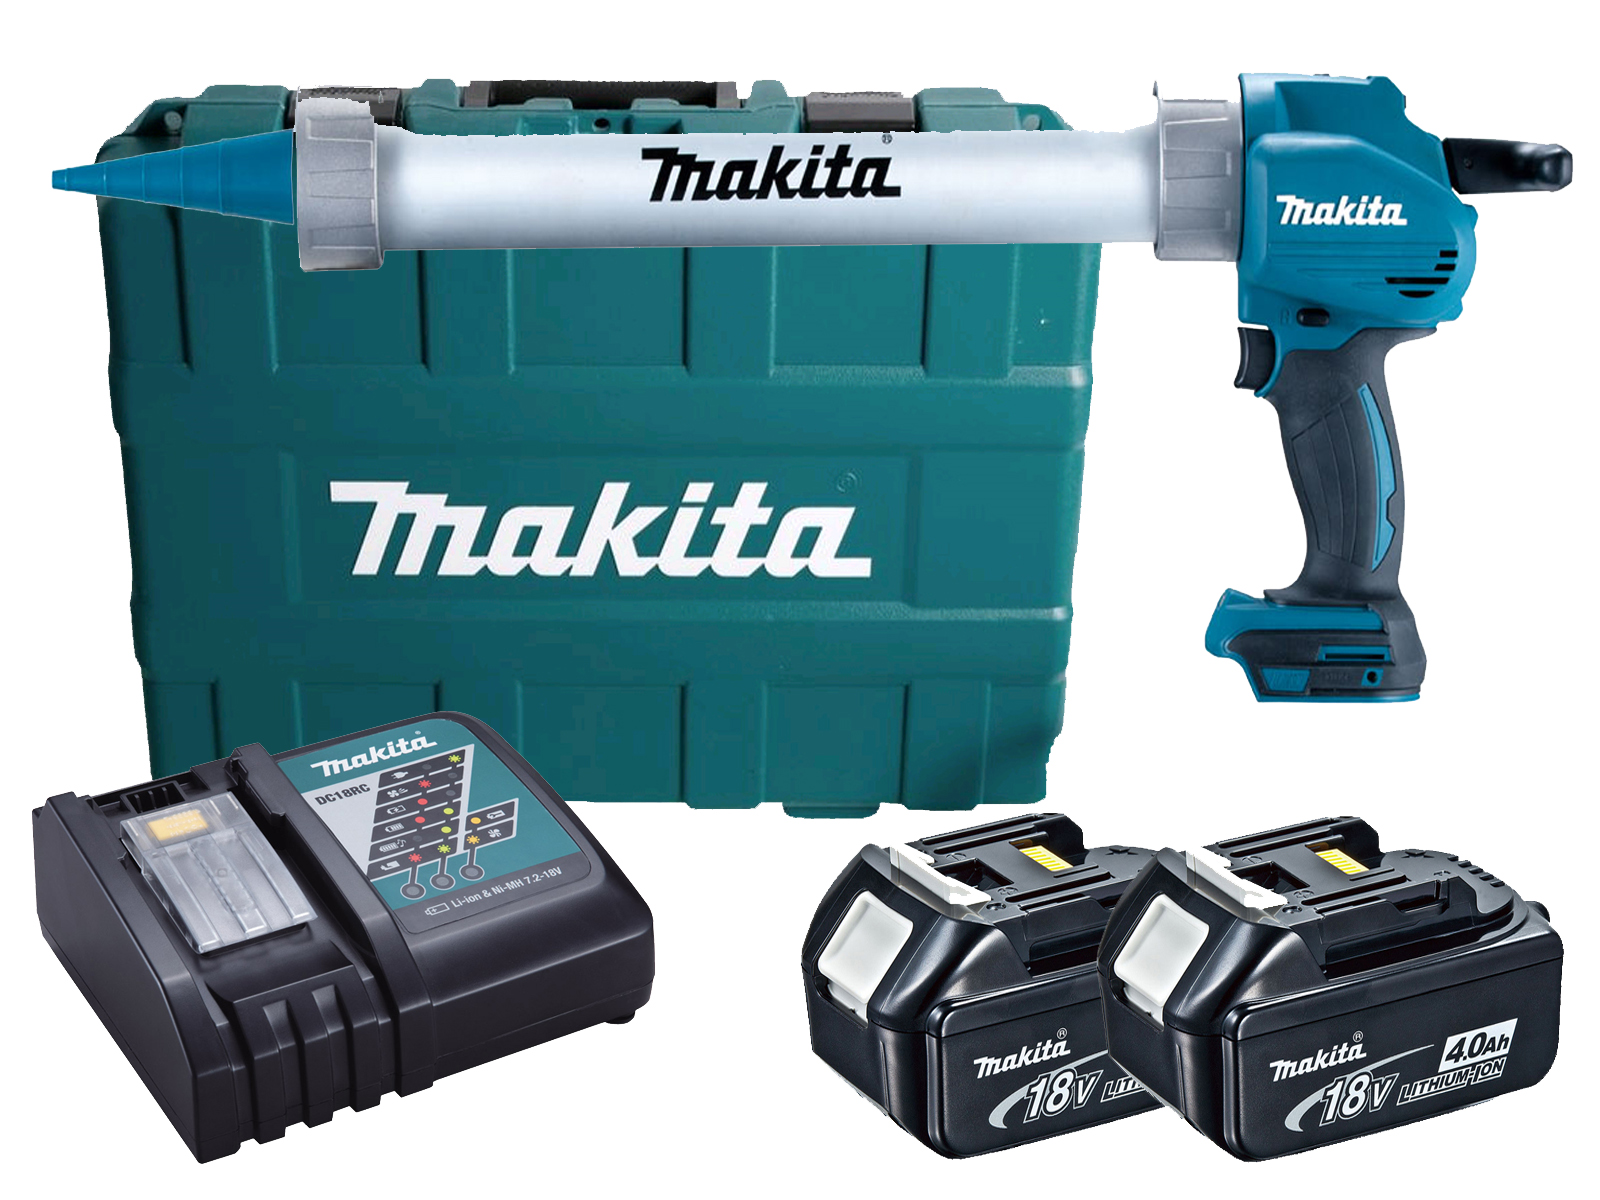 MAKITA 18V 600ML ALUMINIUM CAULKING GUN & CASE - DCG180 - 4.0AH PACK